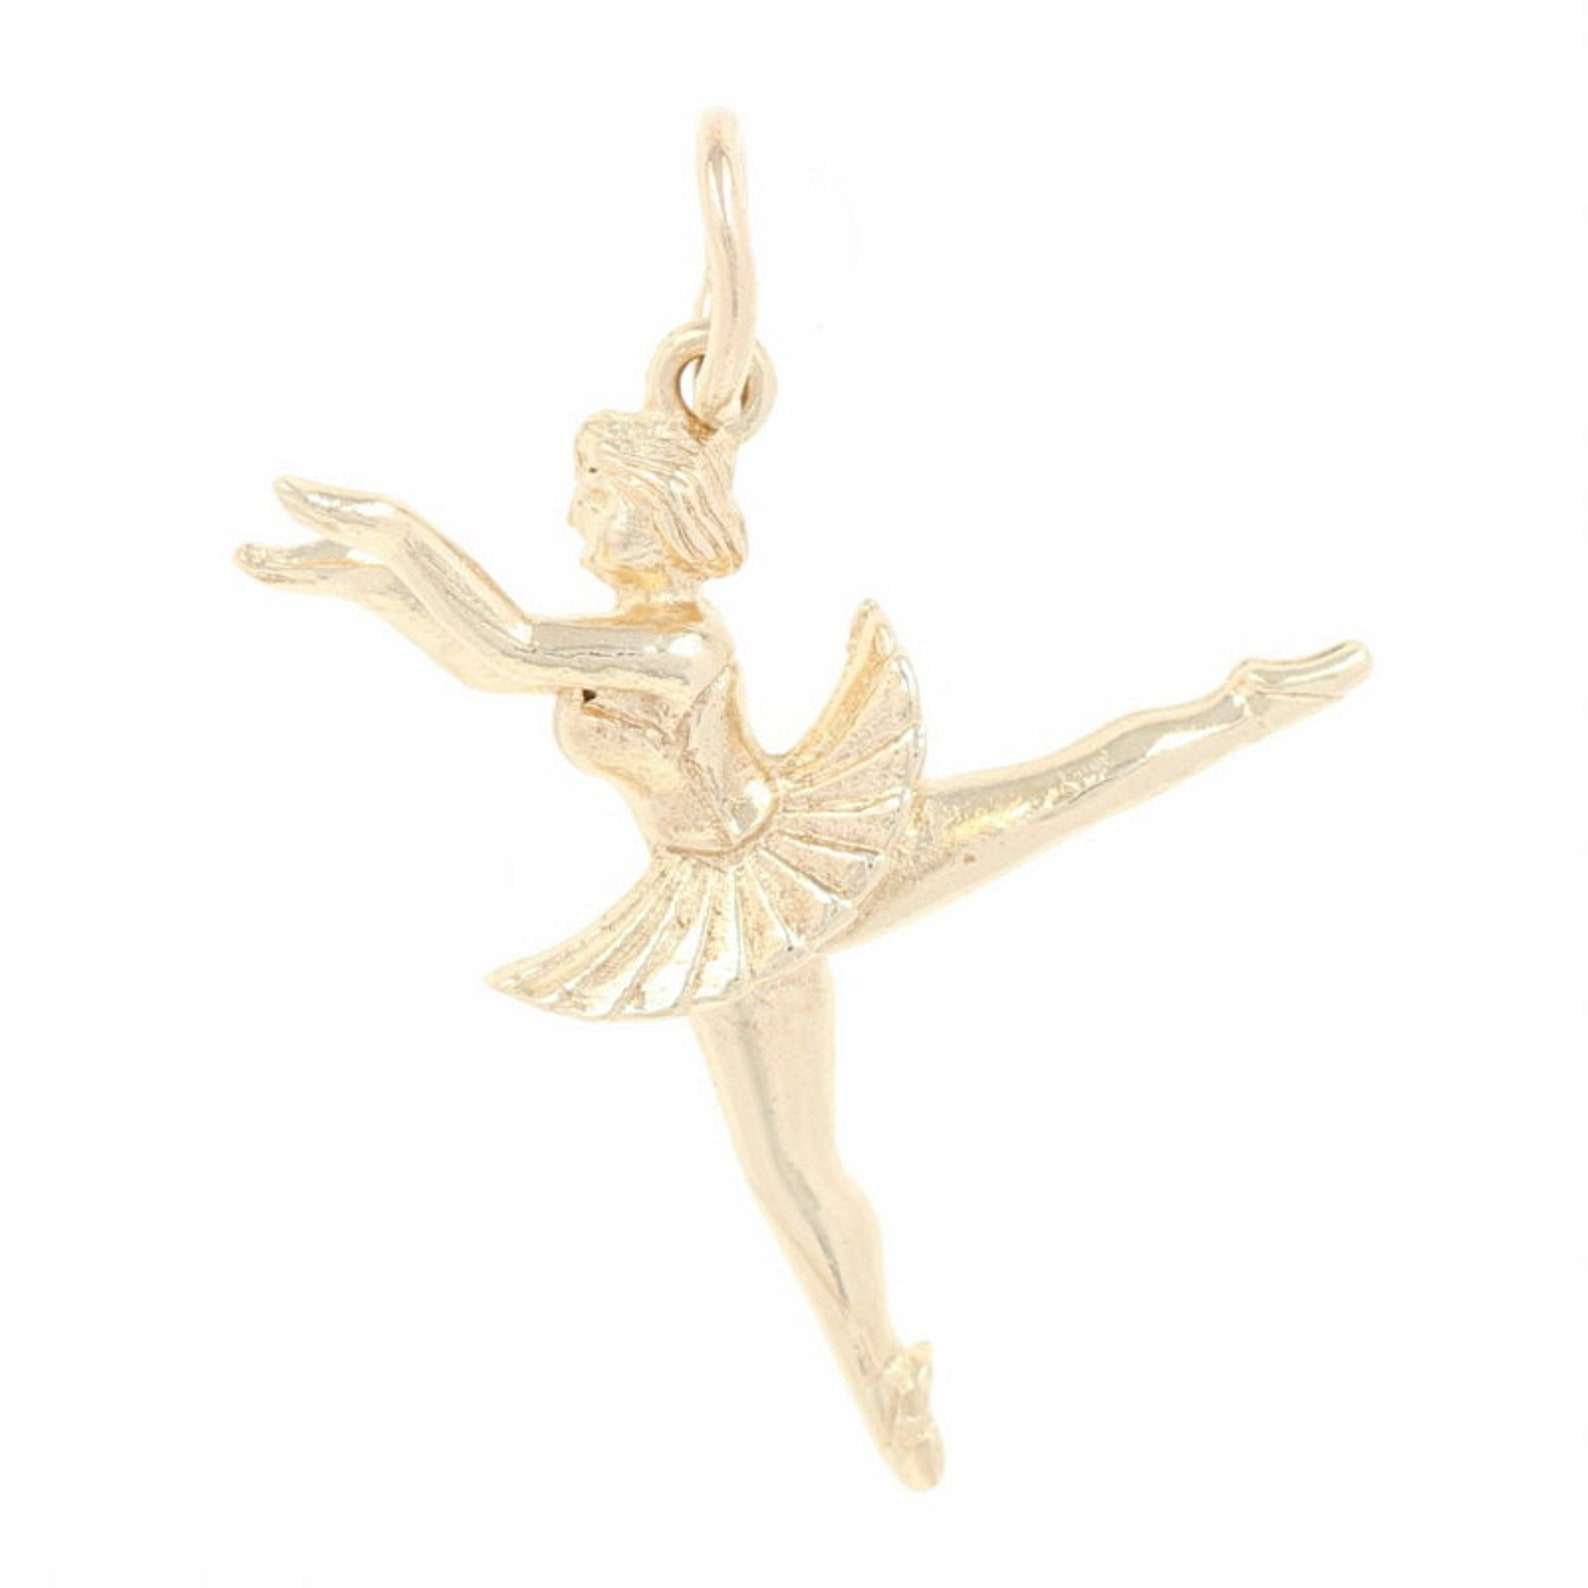 dancing ballerina charm - 9k yellow gold point shoes ballet recital gift